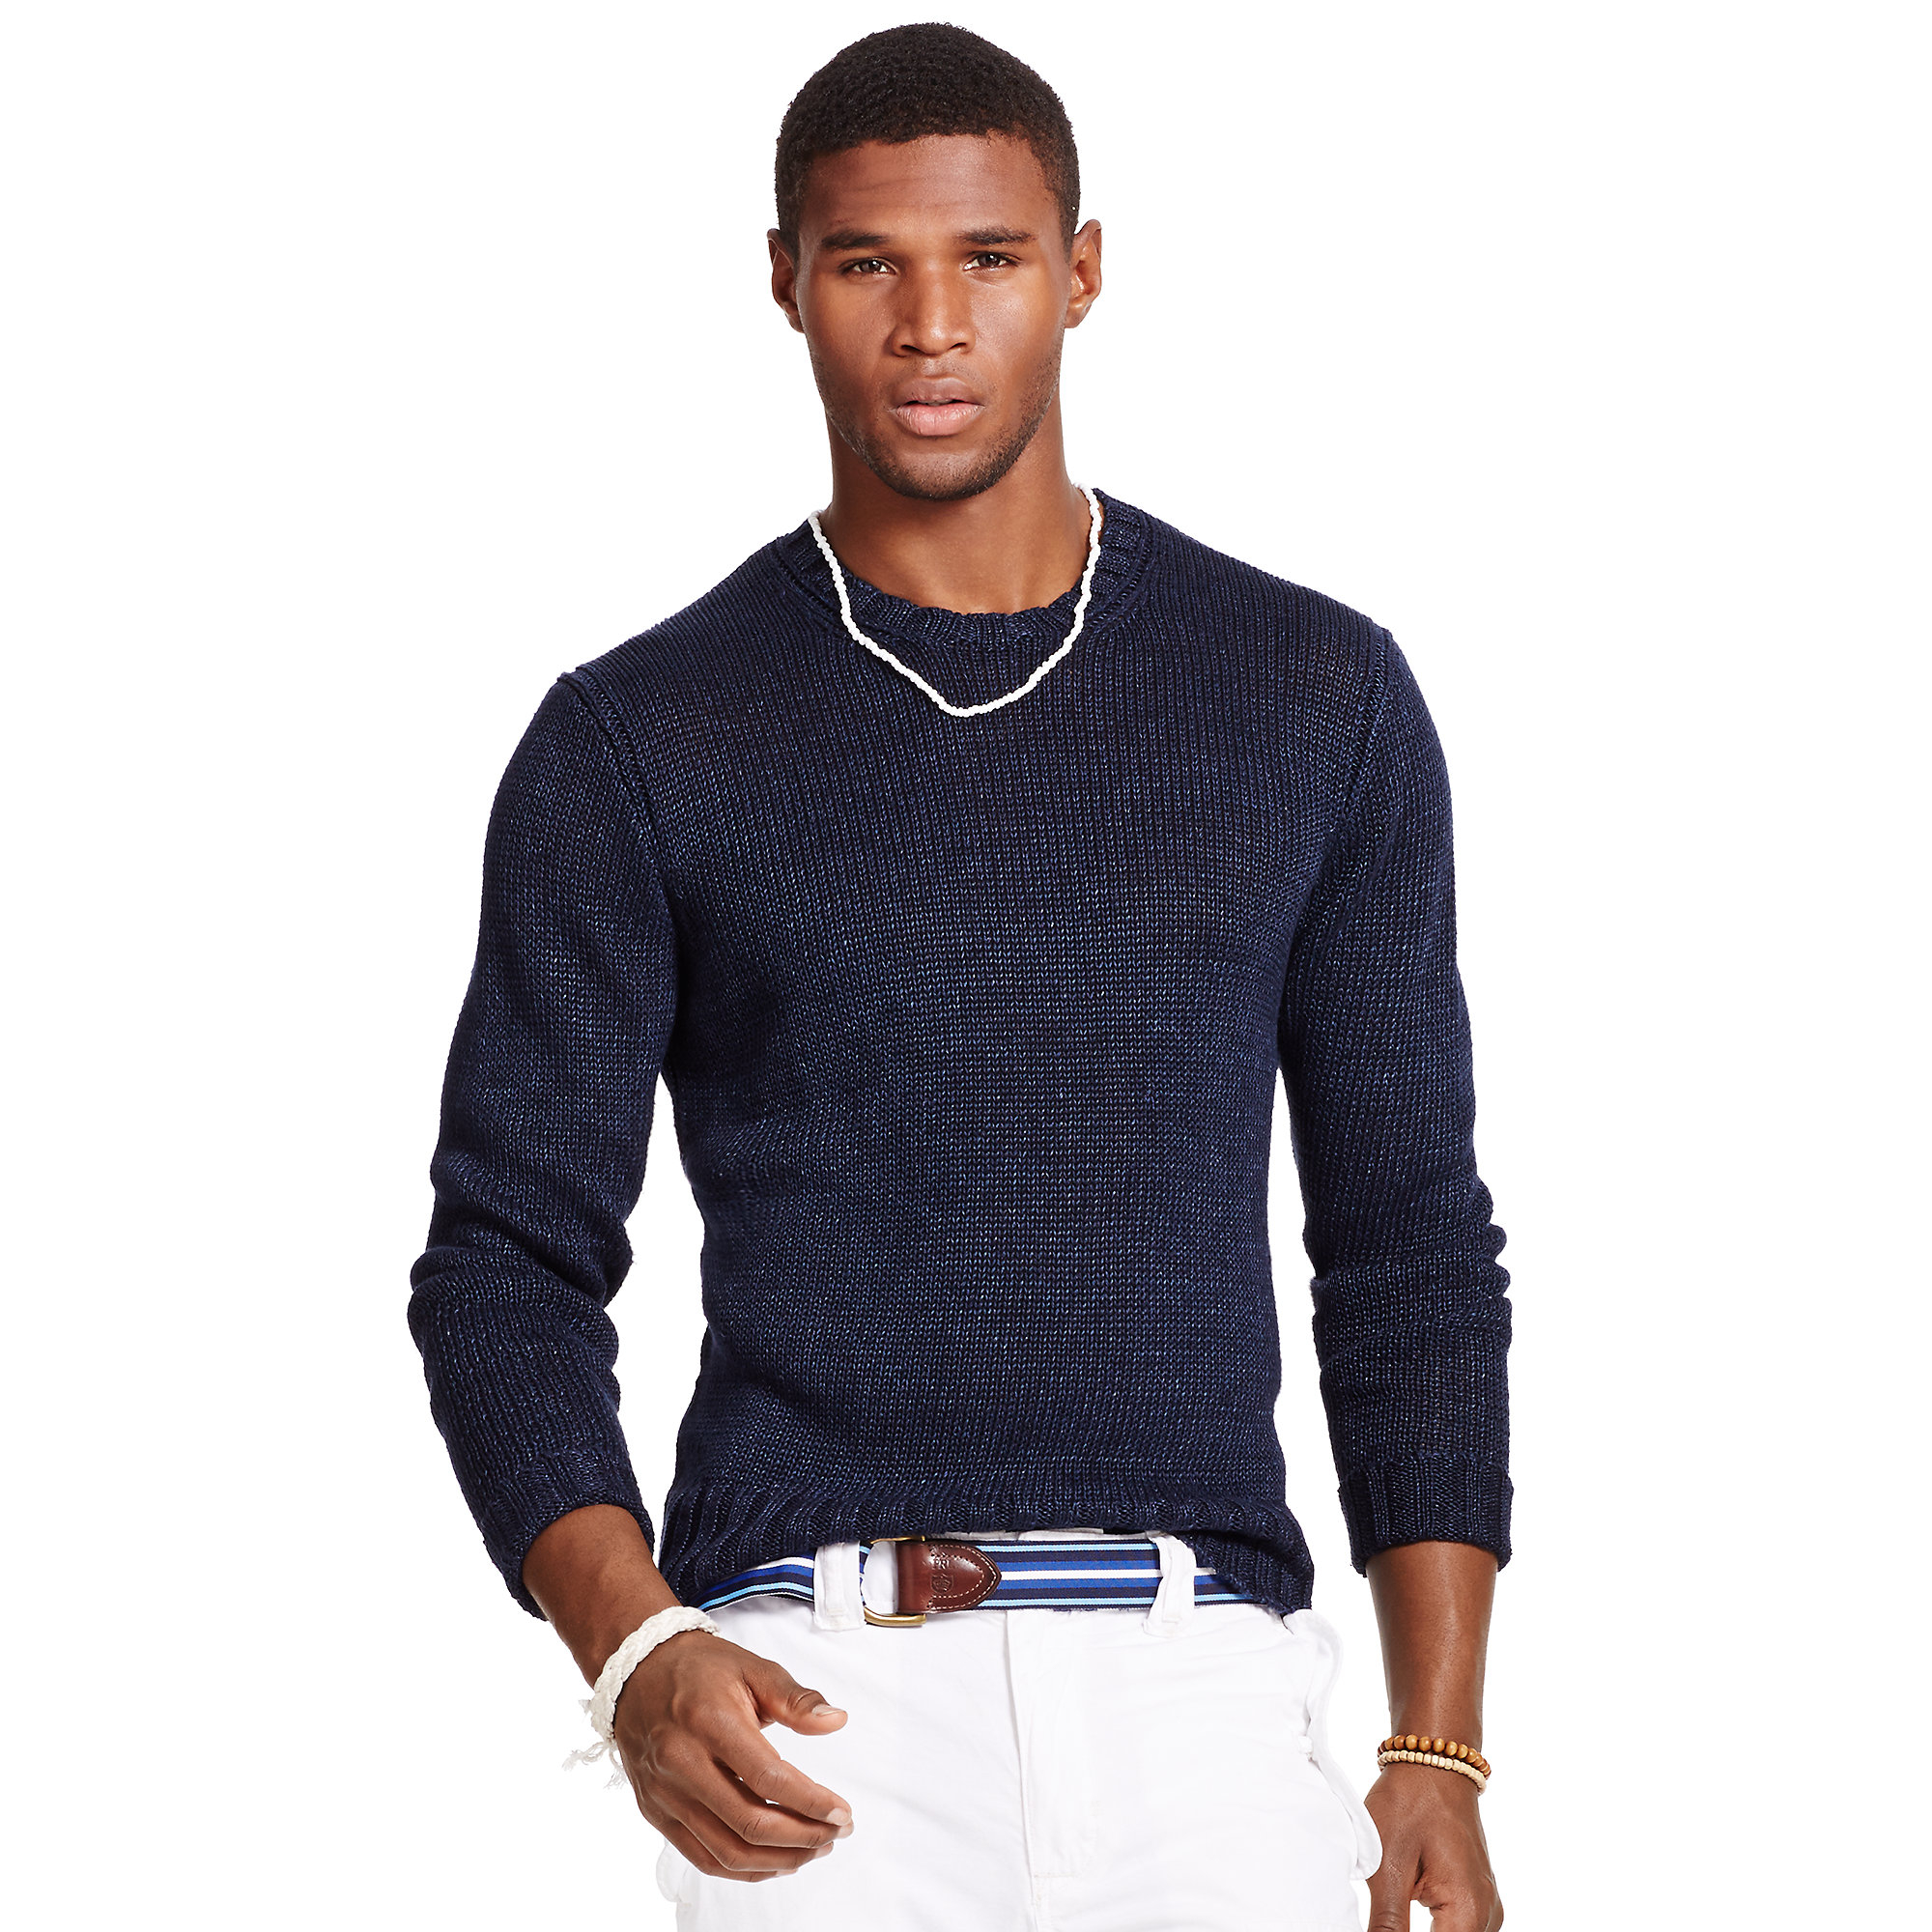 ralph guys Find new and preloved polo by ralph lauren men's items at up to 70% off retail prices poshmark makes shopping fun, affordable & easy.